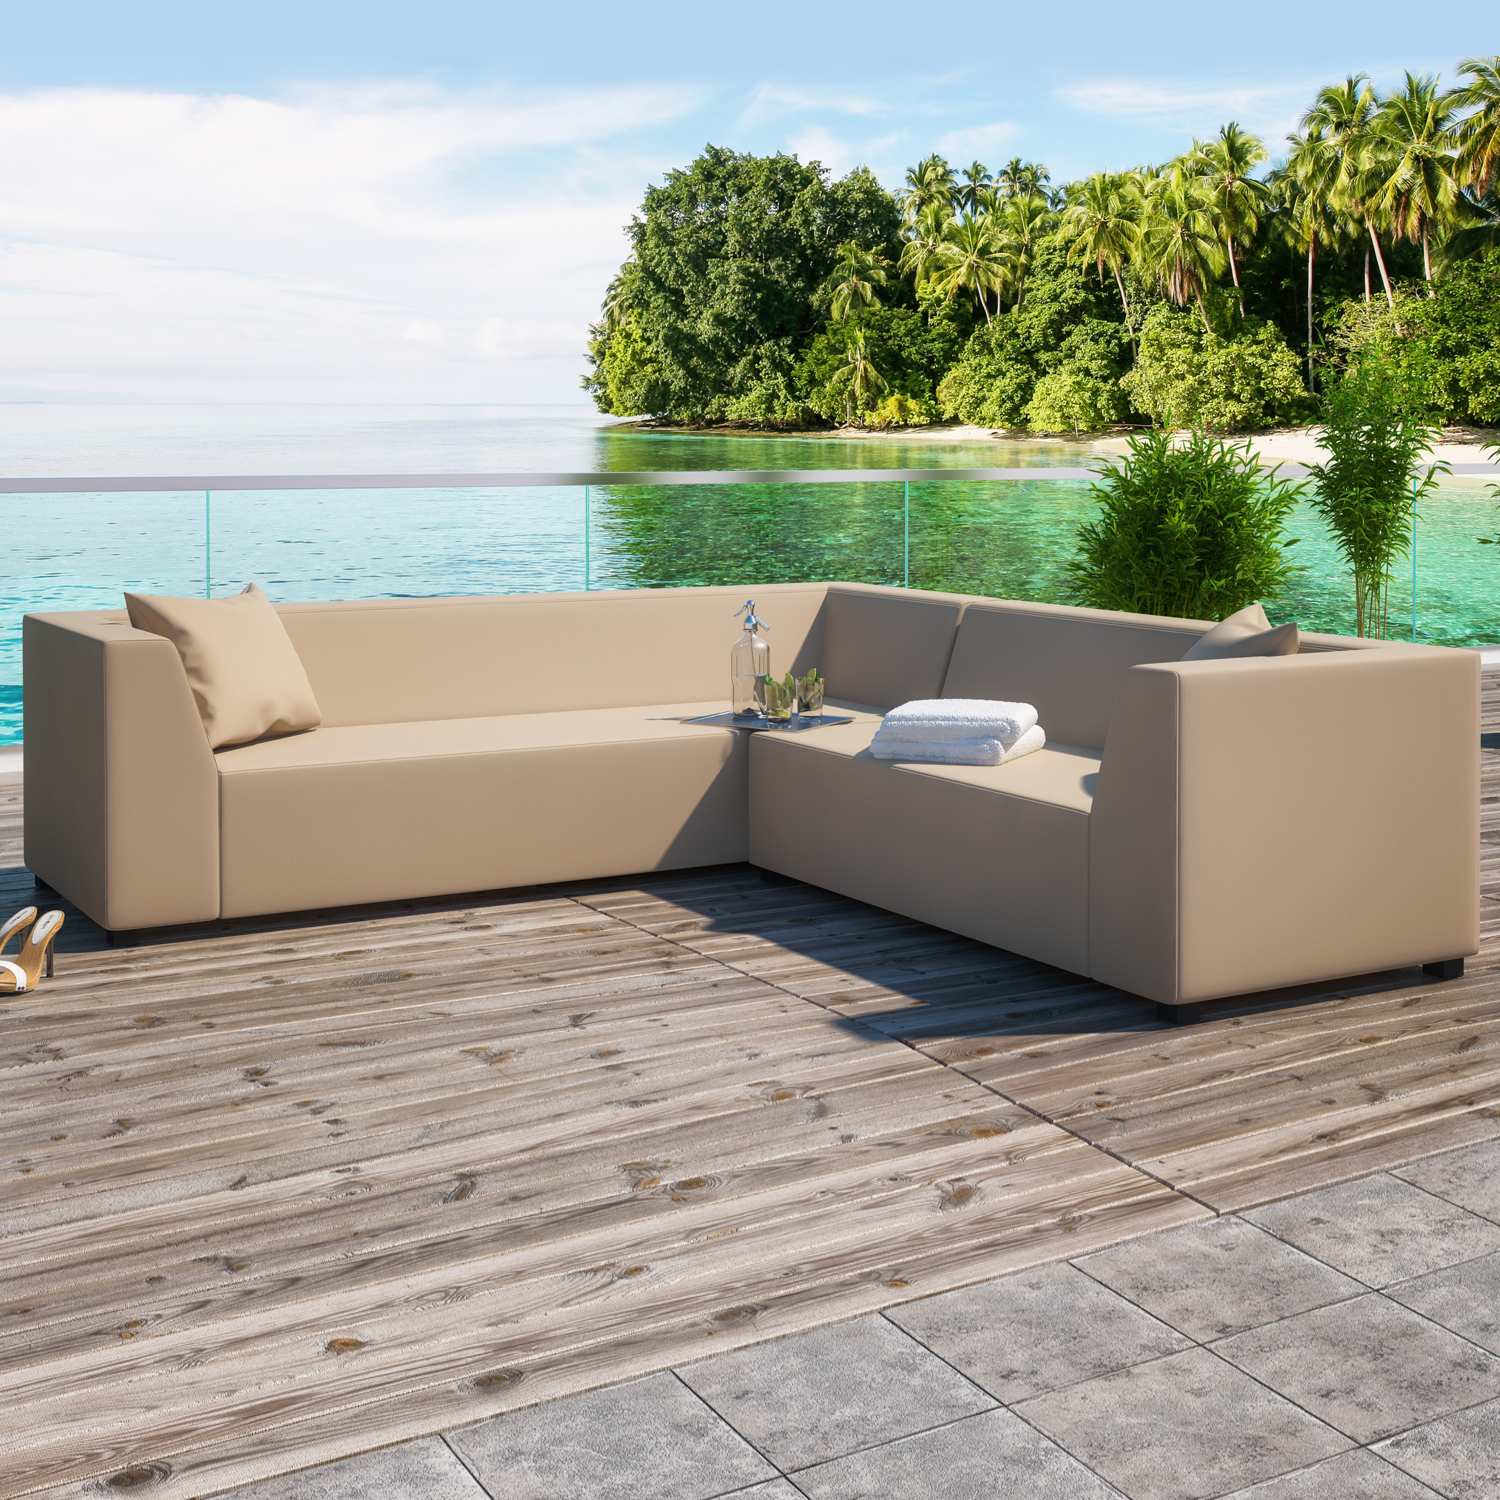 Alkmaar Beige 2 Piece Outdoor Garden Left Corner Sofa Collection